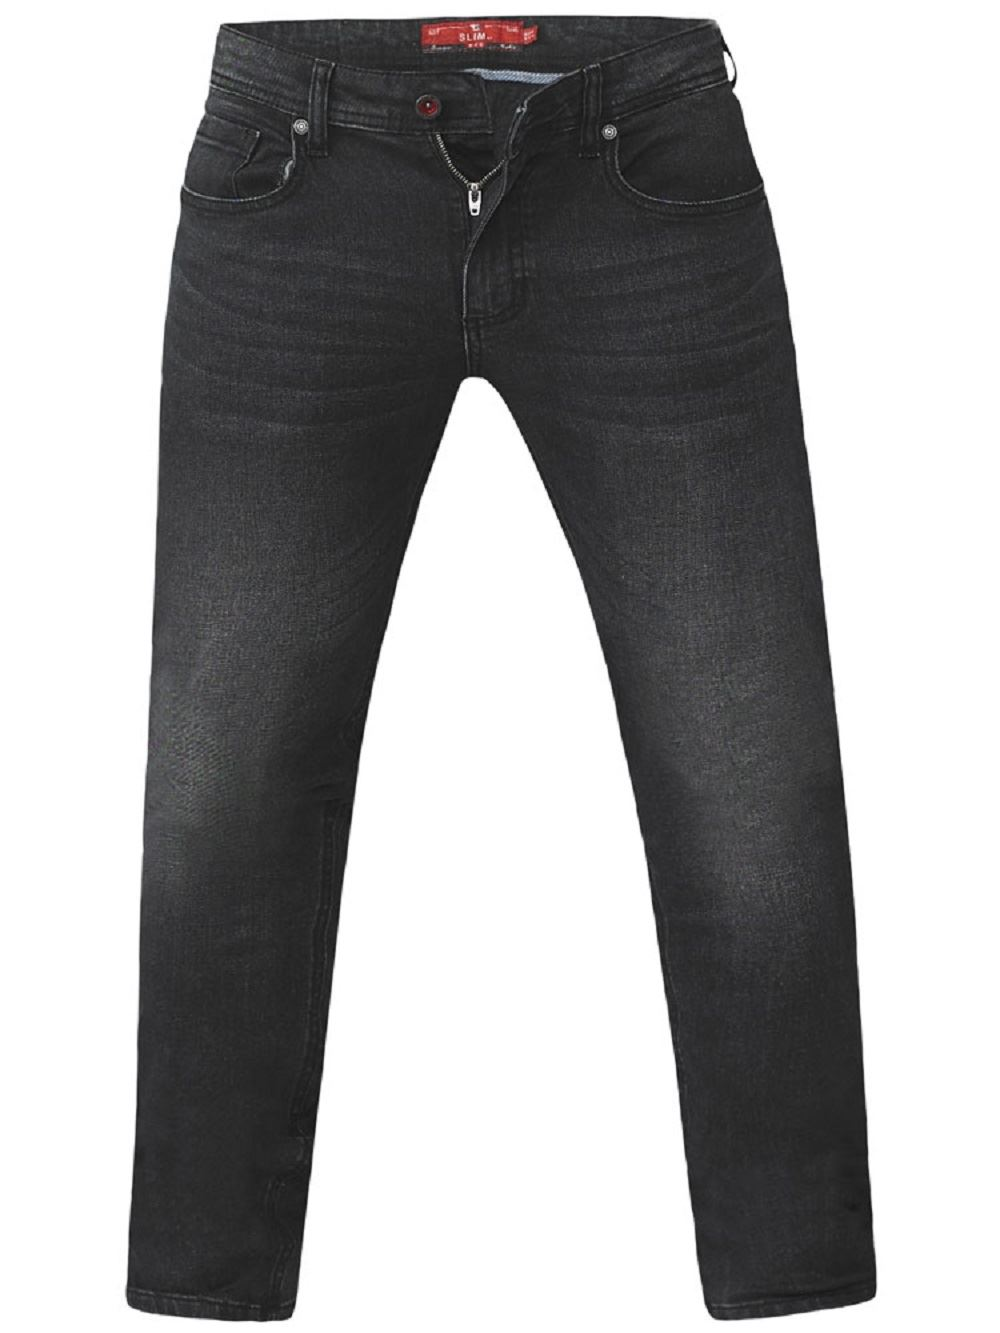 D555-Mens-Big-Size-Tapered-Fit-Stretch-Jeans-In-Grey-Stonewash-Benson thumbnail 6